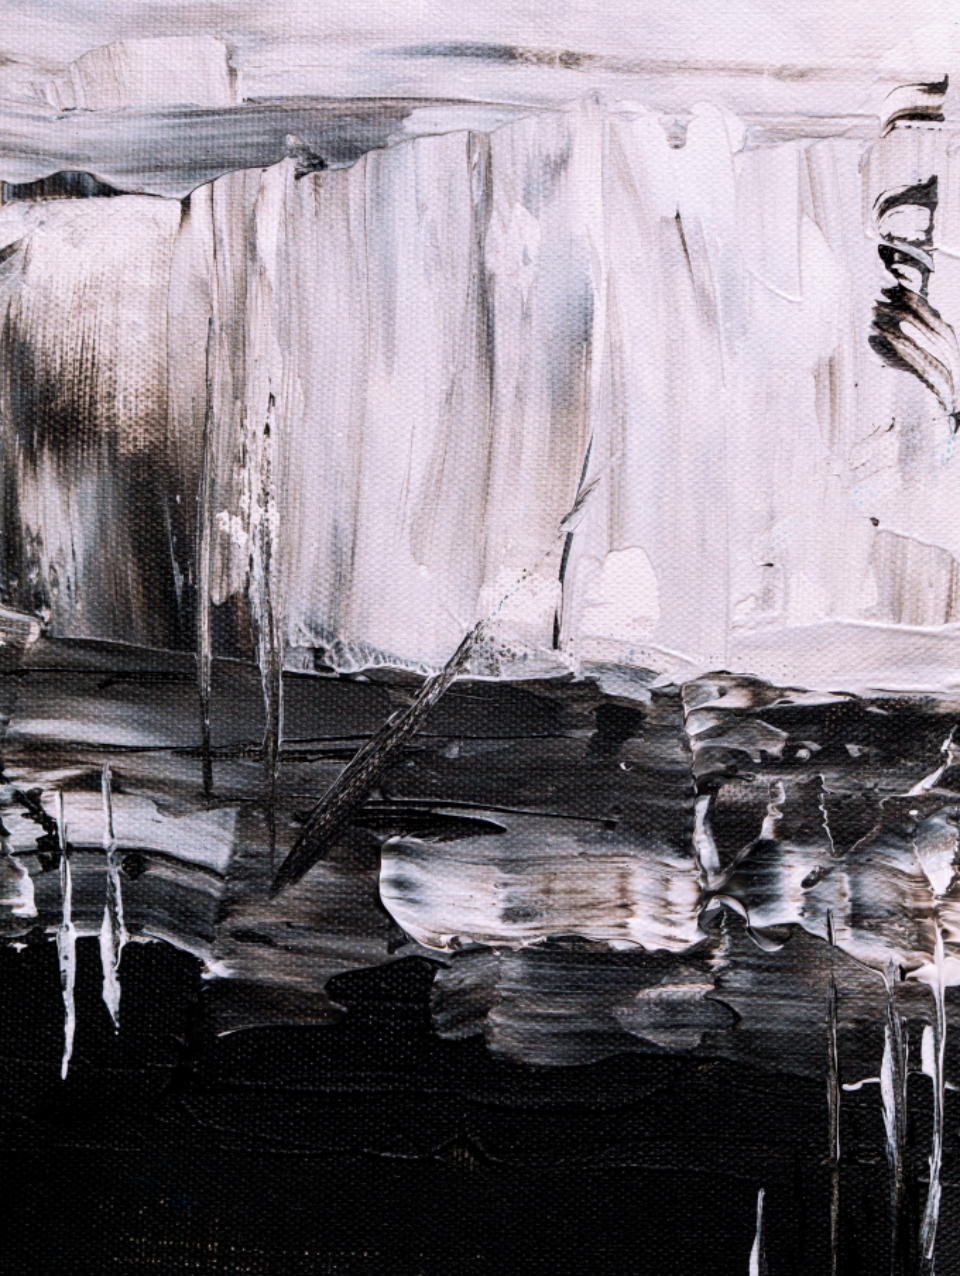 art paint abstract bold acrylic canvas close up artist creative design texture grunge painting artwork black white